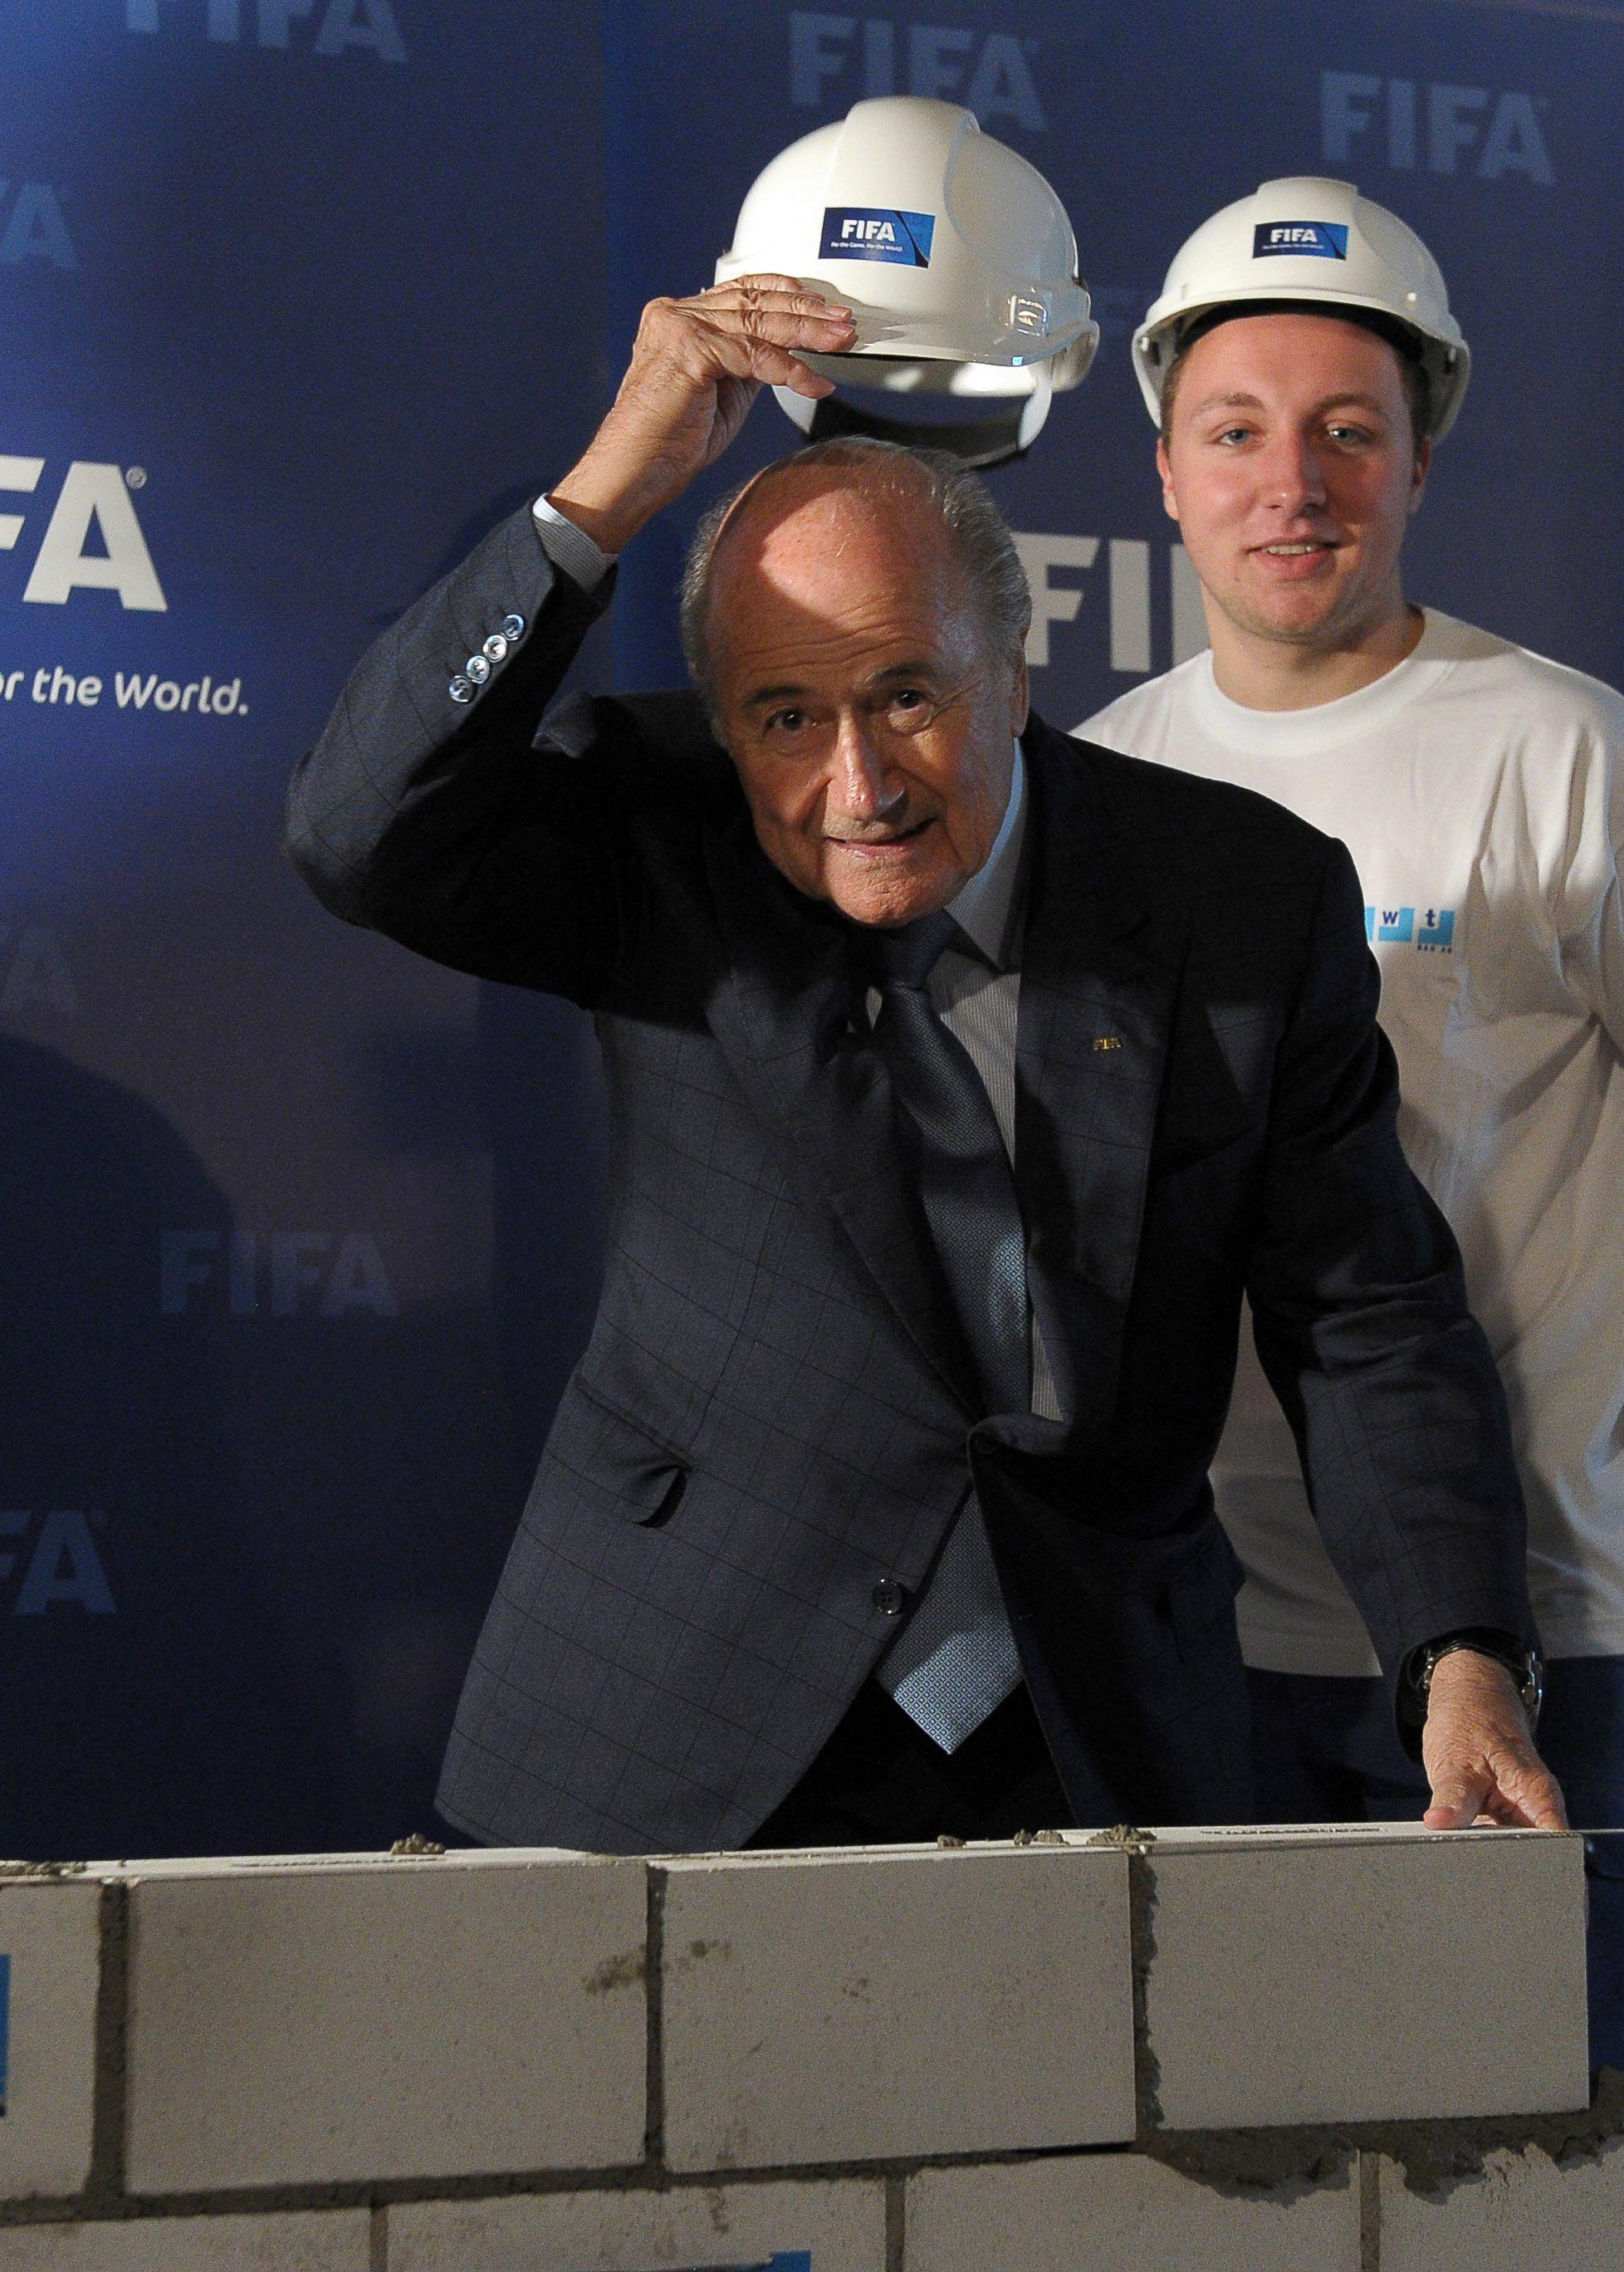 Warner claims $6M FIFA gift was to back Blatter